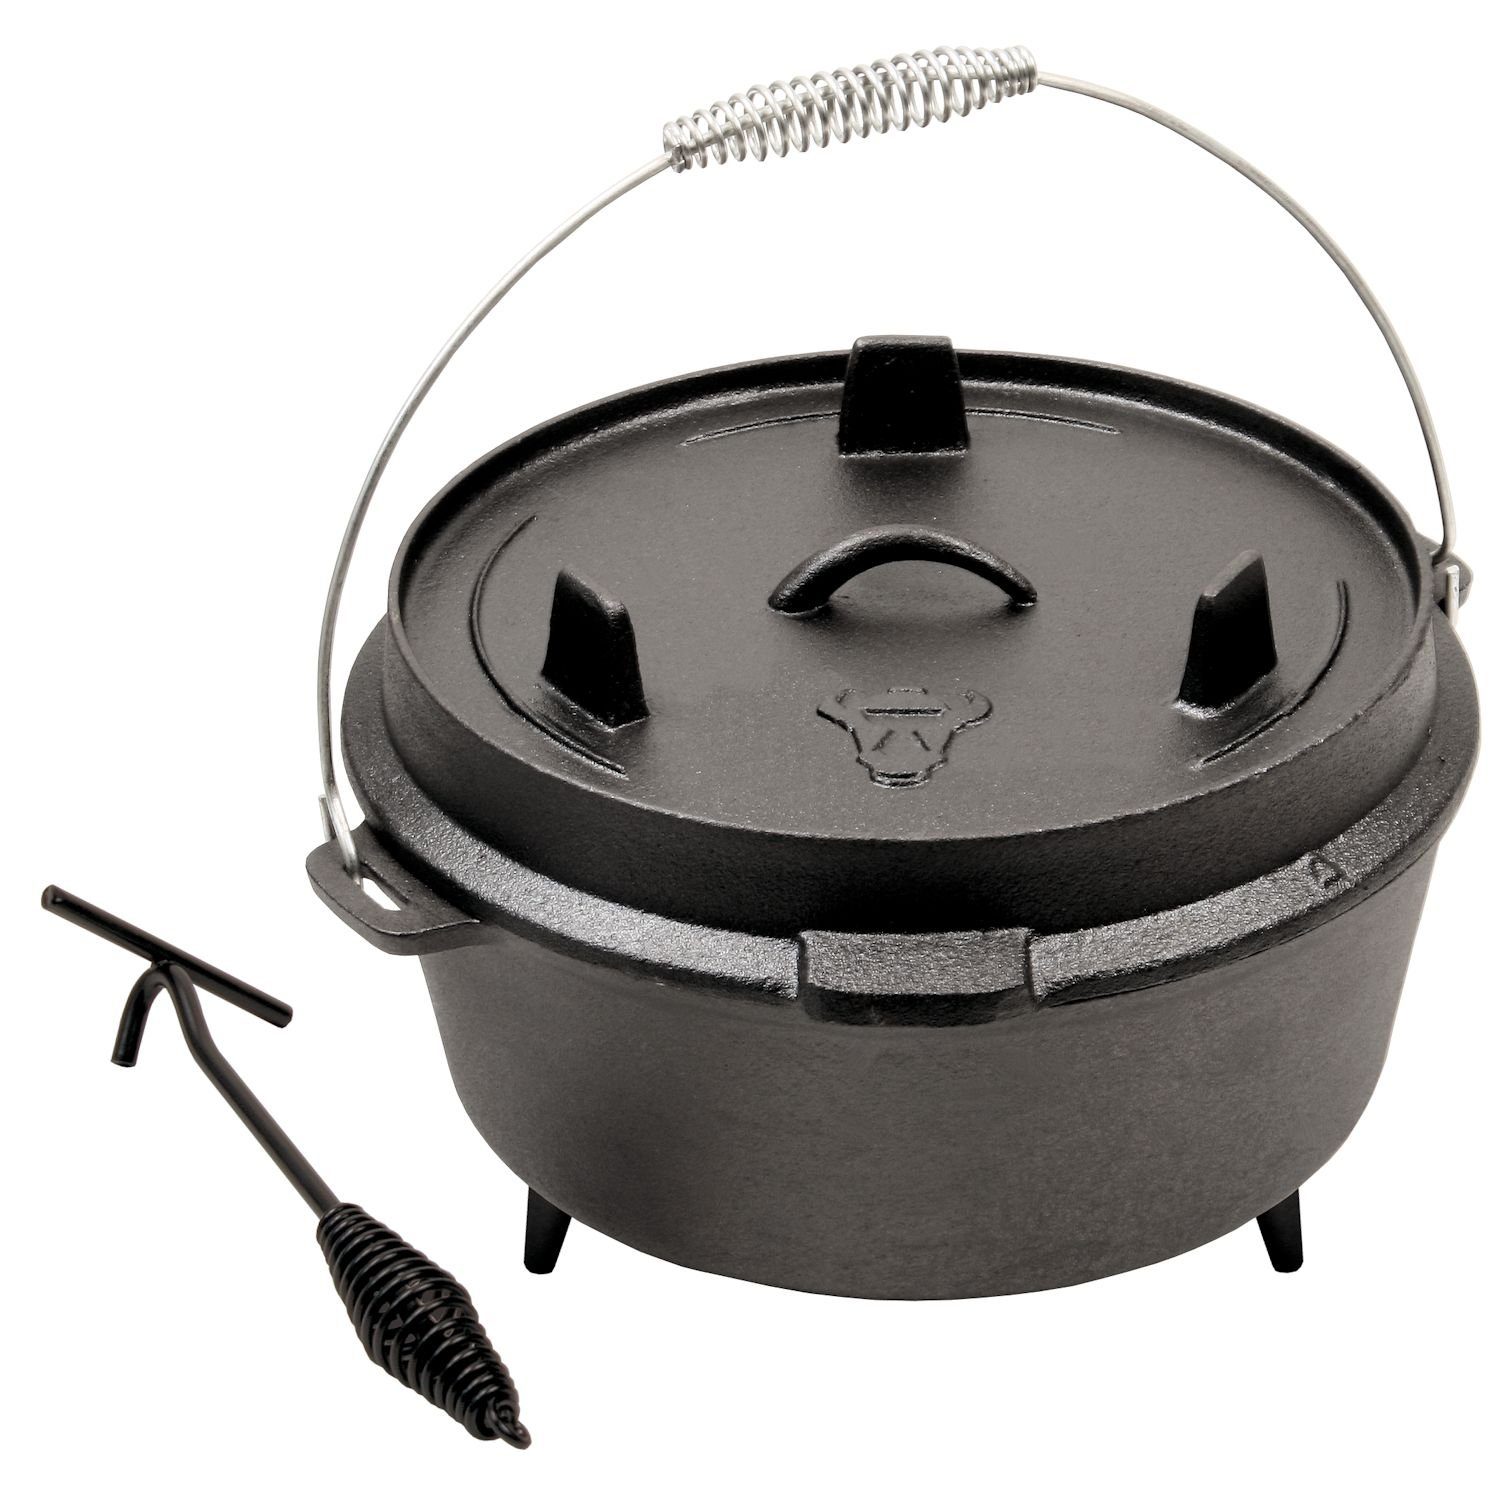 Dutch Oven DO9 Cast Iron Camping Cooking Pot 9QT Pre-seasoned CS-Trading